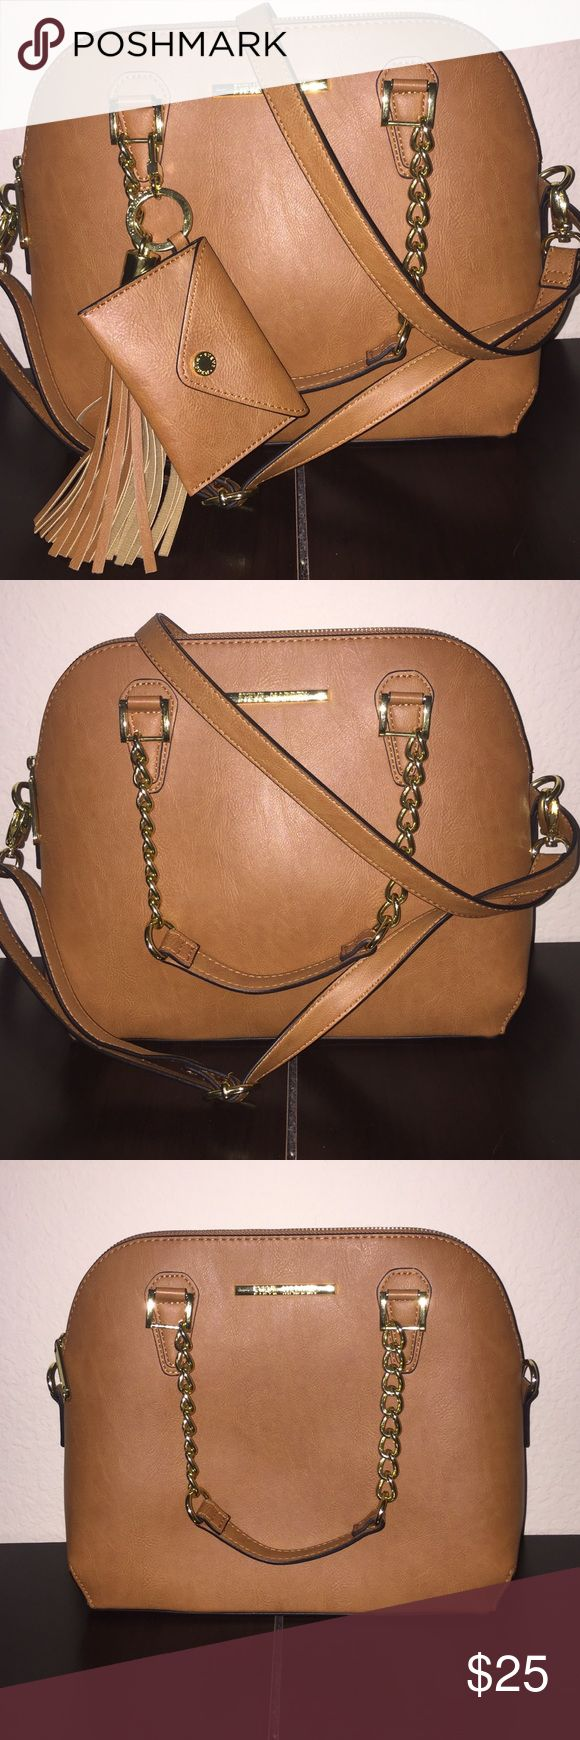 Light brown Steve Madden purse New without tags! This light brown purse is perfect for on the go. This purse has an adjustable cross body option. The purse as two pockets in the inside and a zipper. On the outside it has a detachable charm that can also be used to store card and cash, if you didn't want to take your whole purse. Steve Madden Bags Crossbody Bags